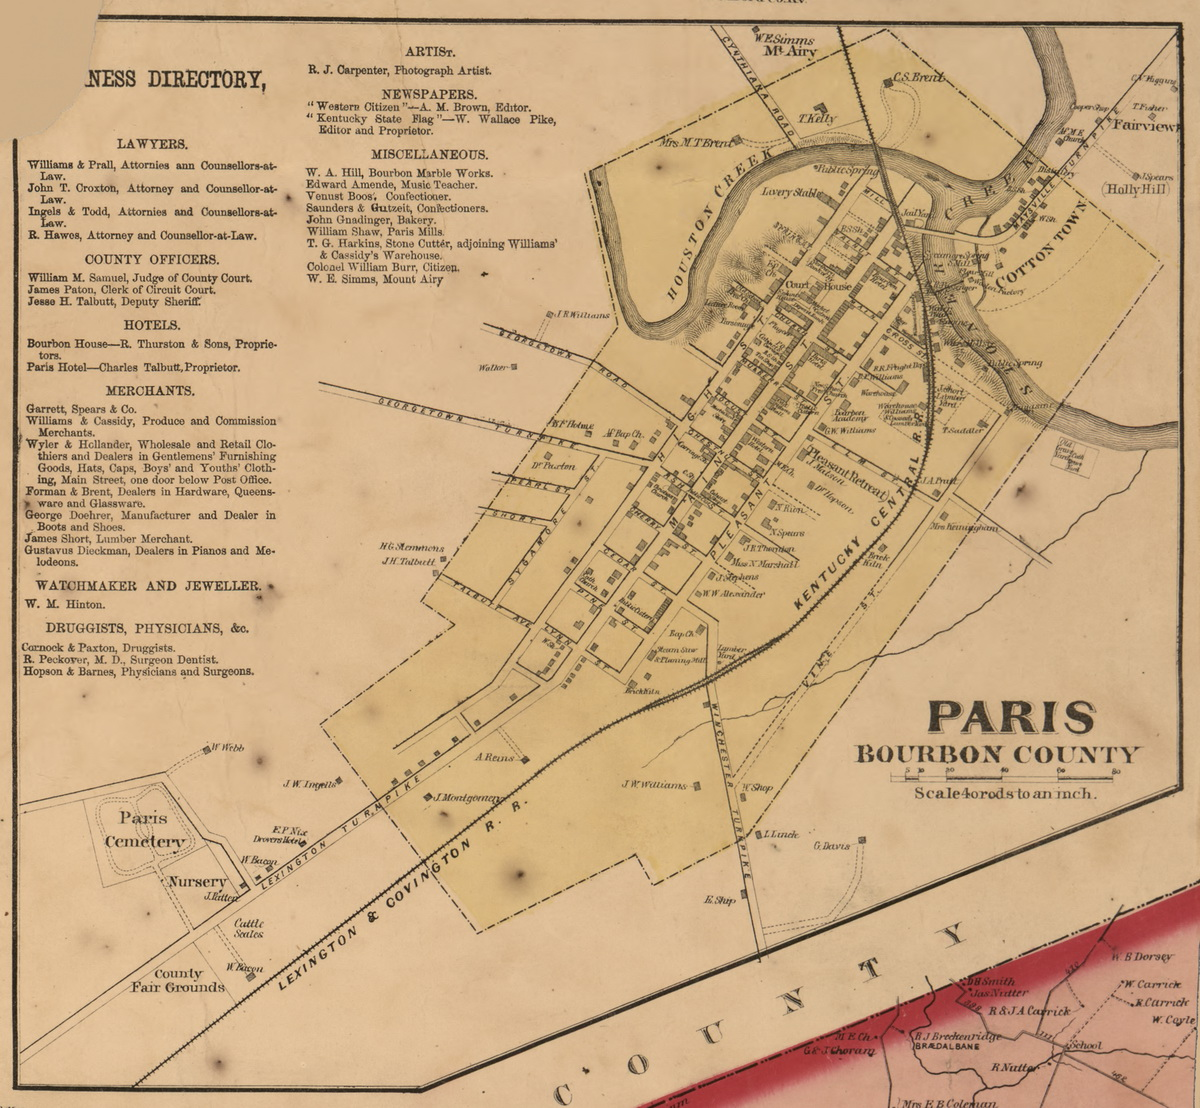 Picture of: Paris Bourbon County Kentucky 1861 Old Town Map Custom Print Bourbon Co Old Maps